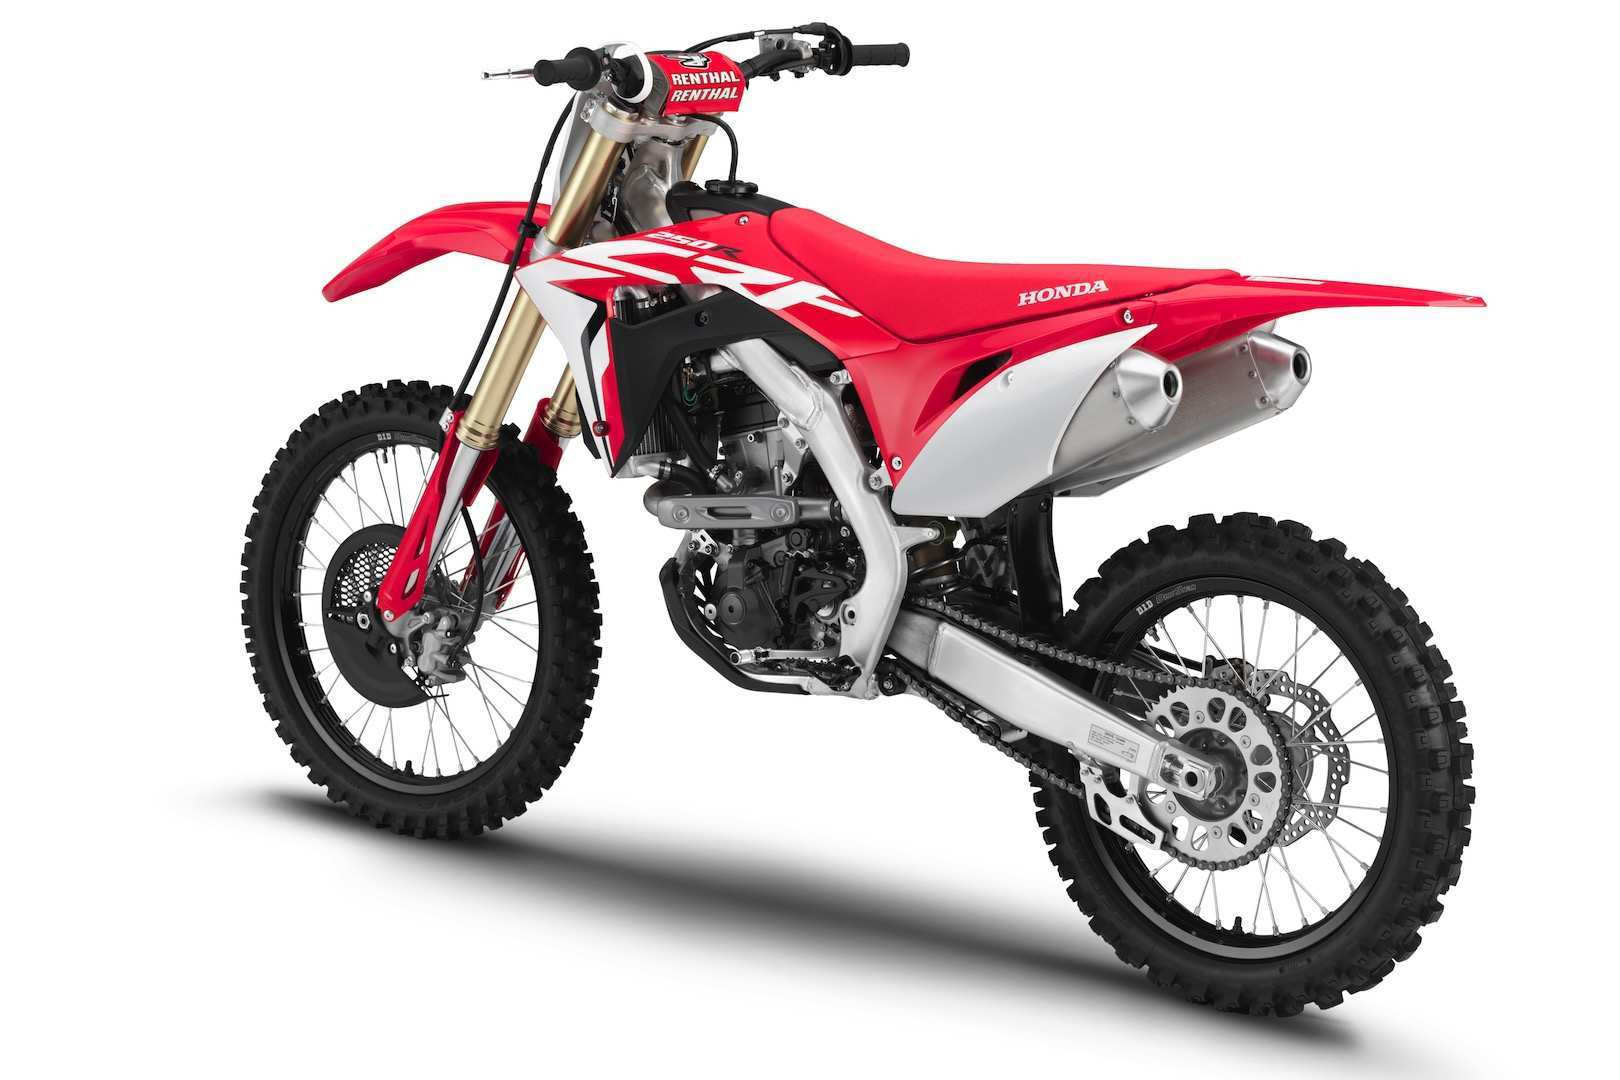 36 Gallery of 2019 Honda Dirt Bikes Redesign and Concept for 2019 Honda Dirt Bikes